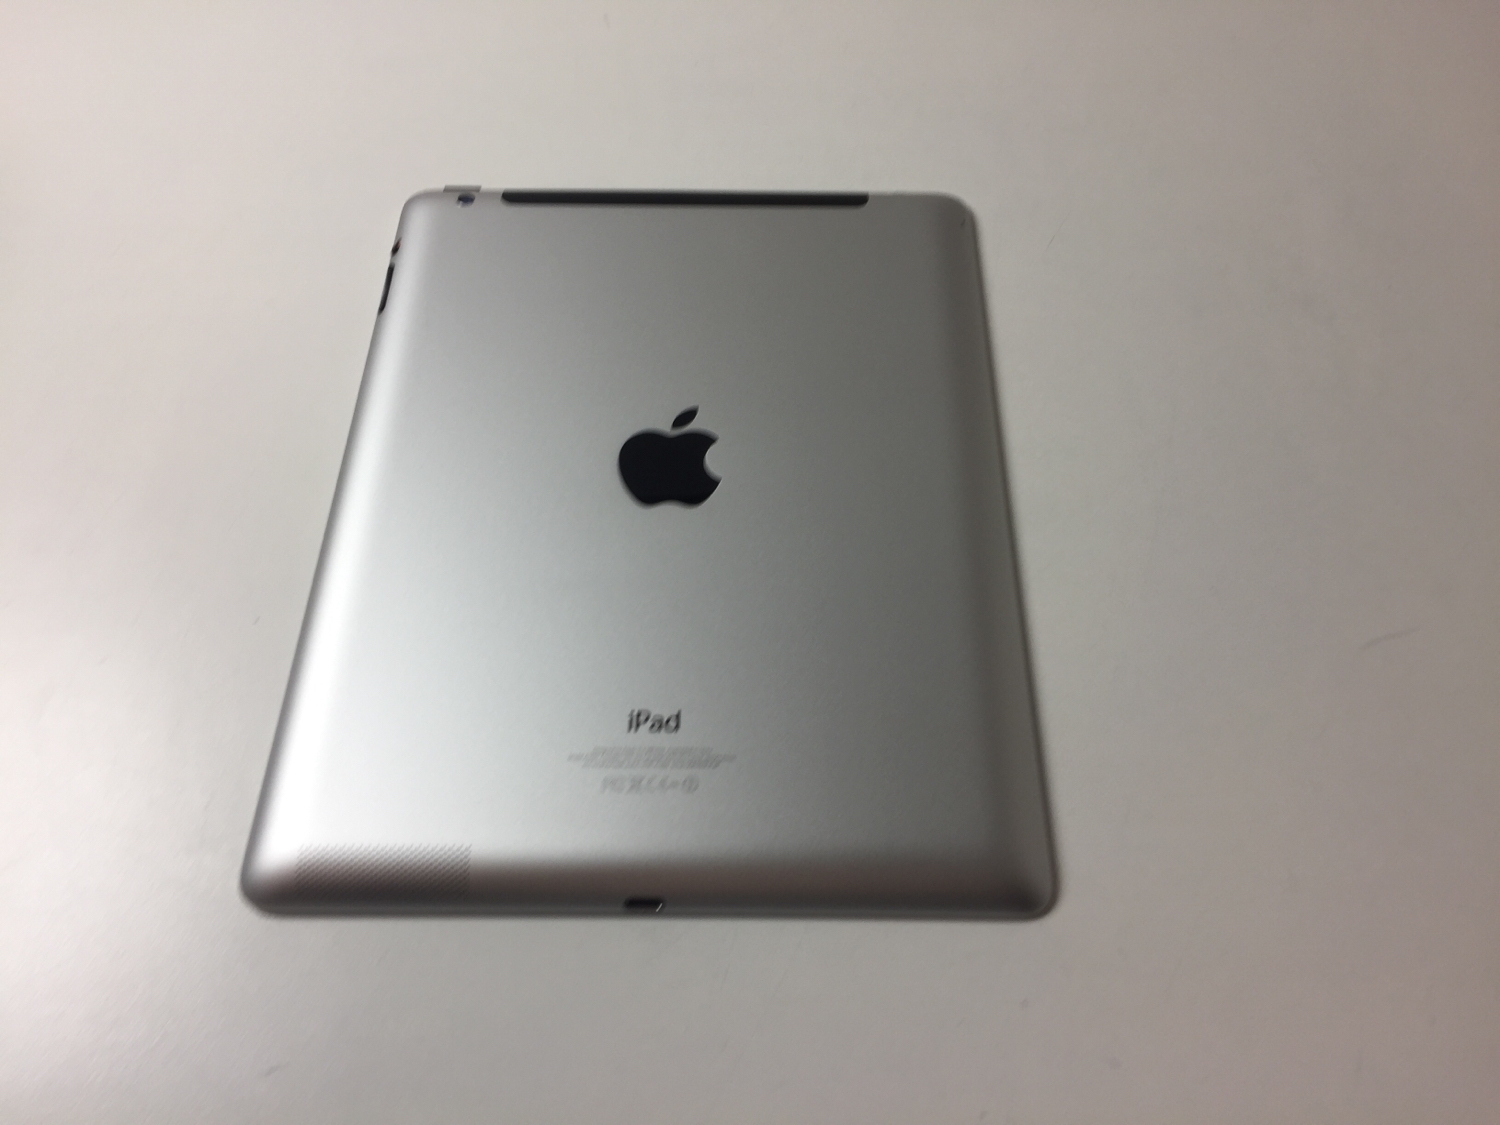 iPad 4 Wi-Fi + Cellular 16GB, 16 GB, Black, Kuva 2